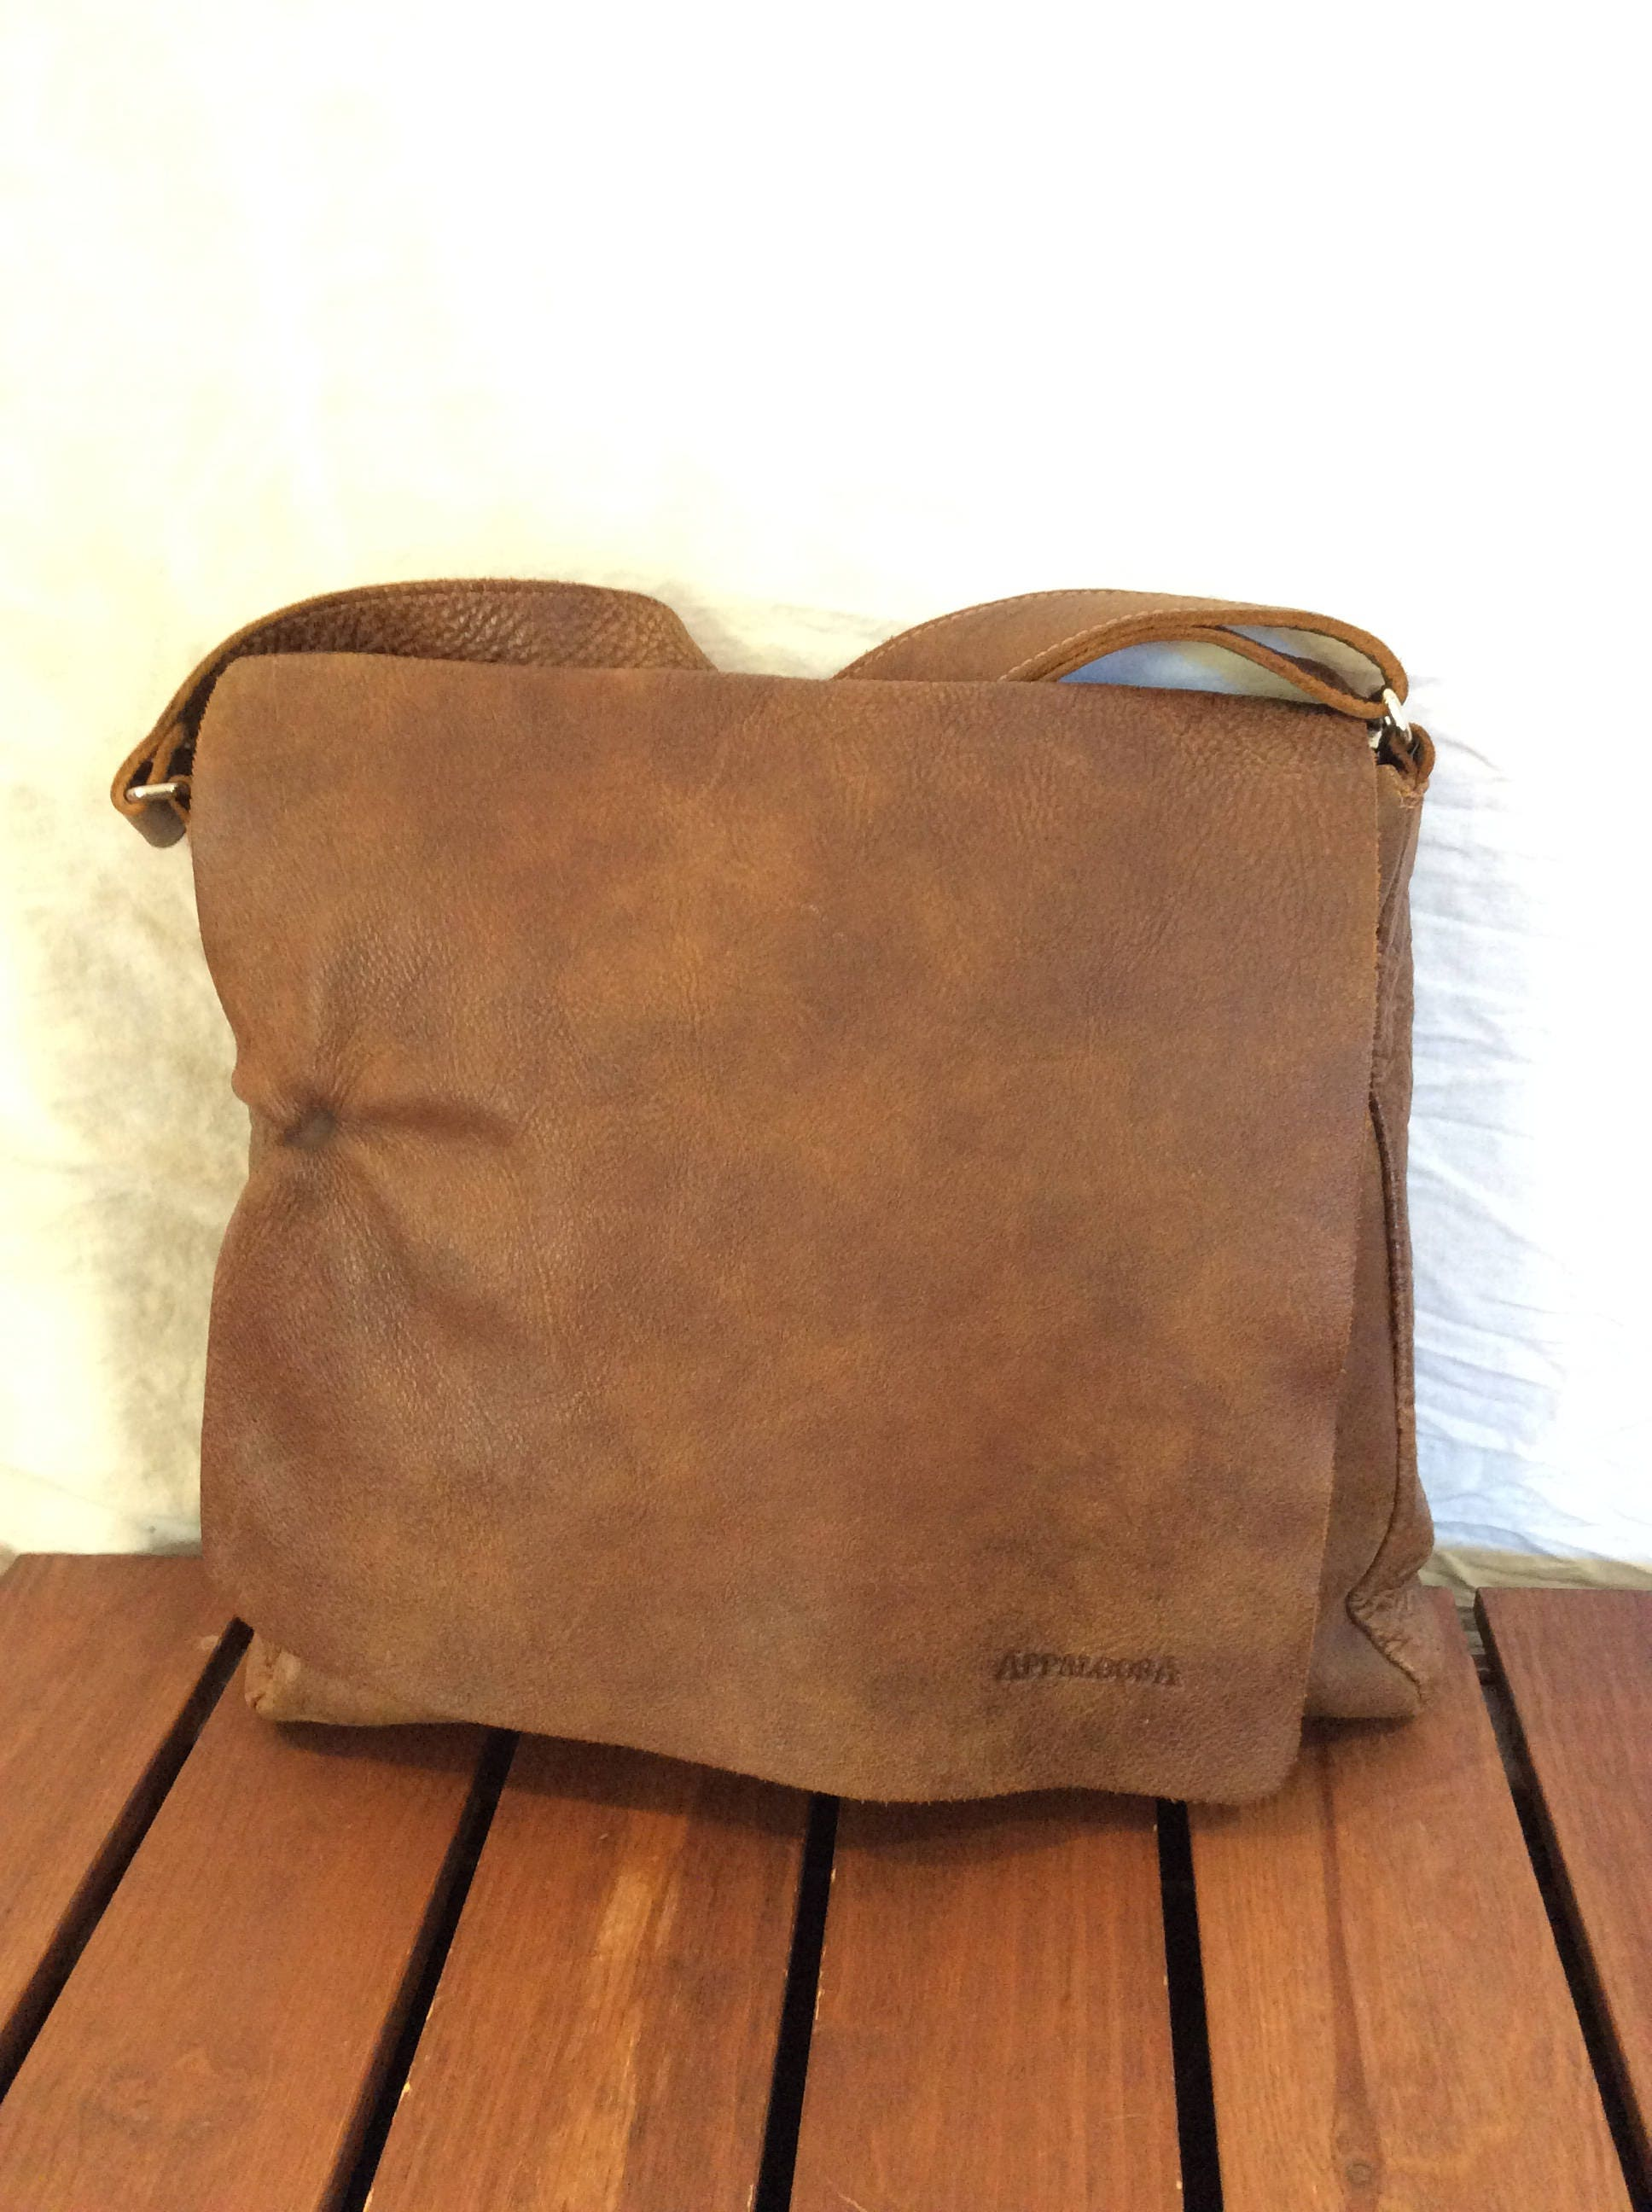 to find vintage genuine roots brown leather crossbody